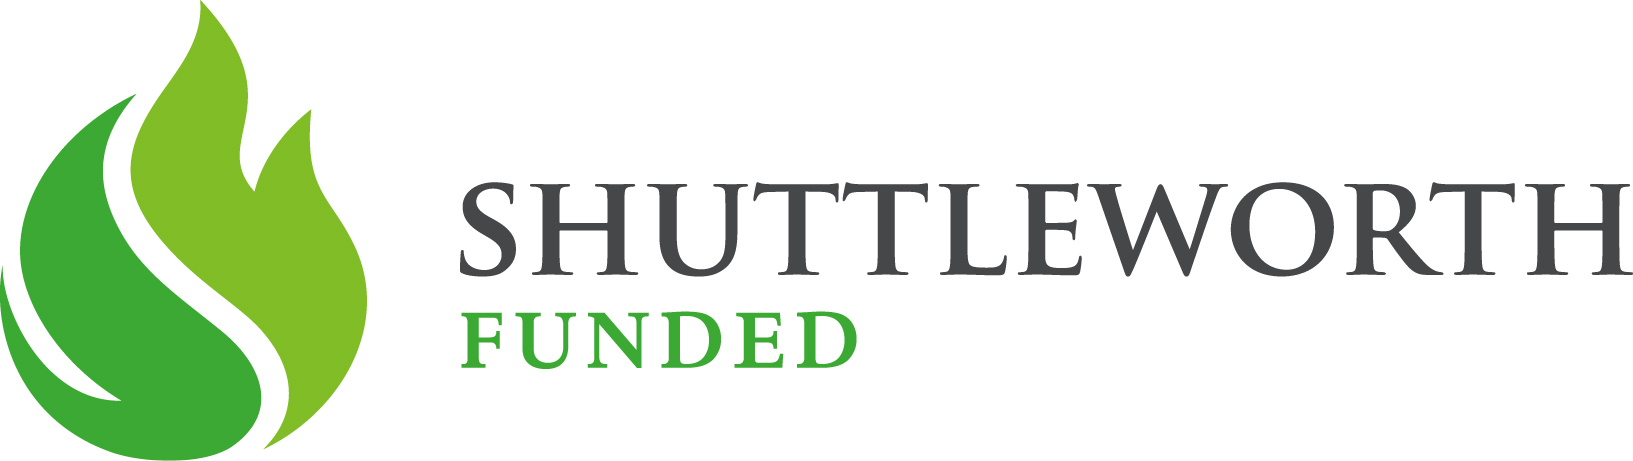 shuttleworth logo